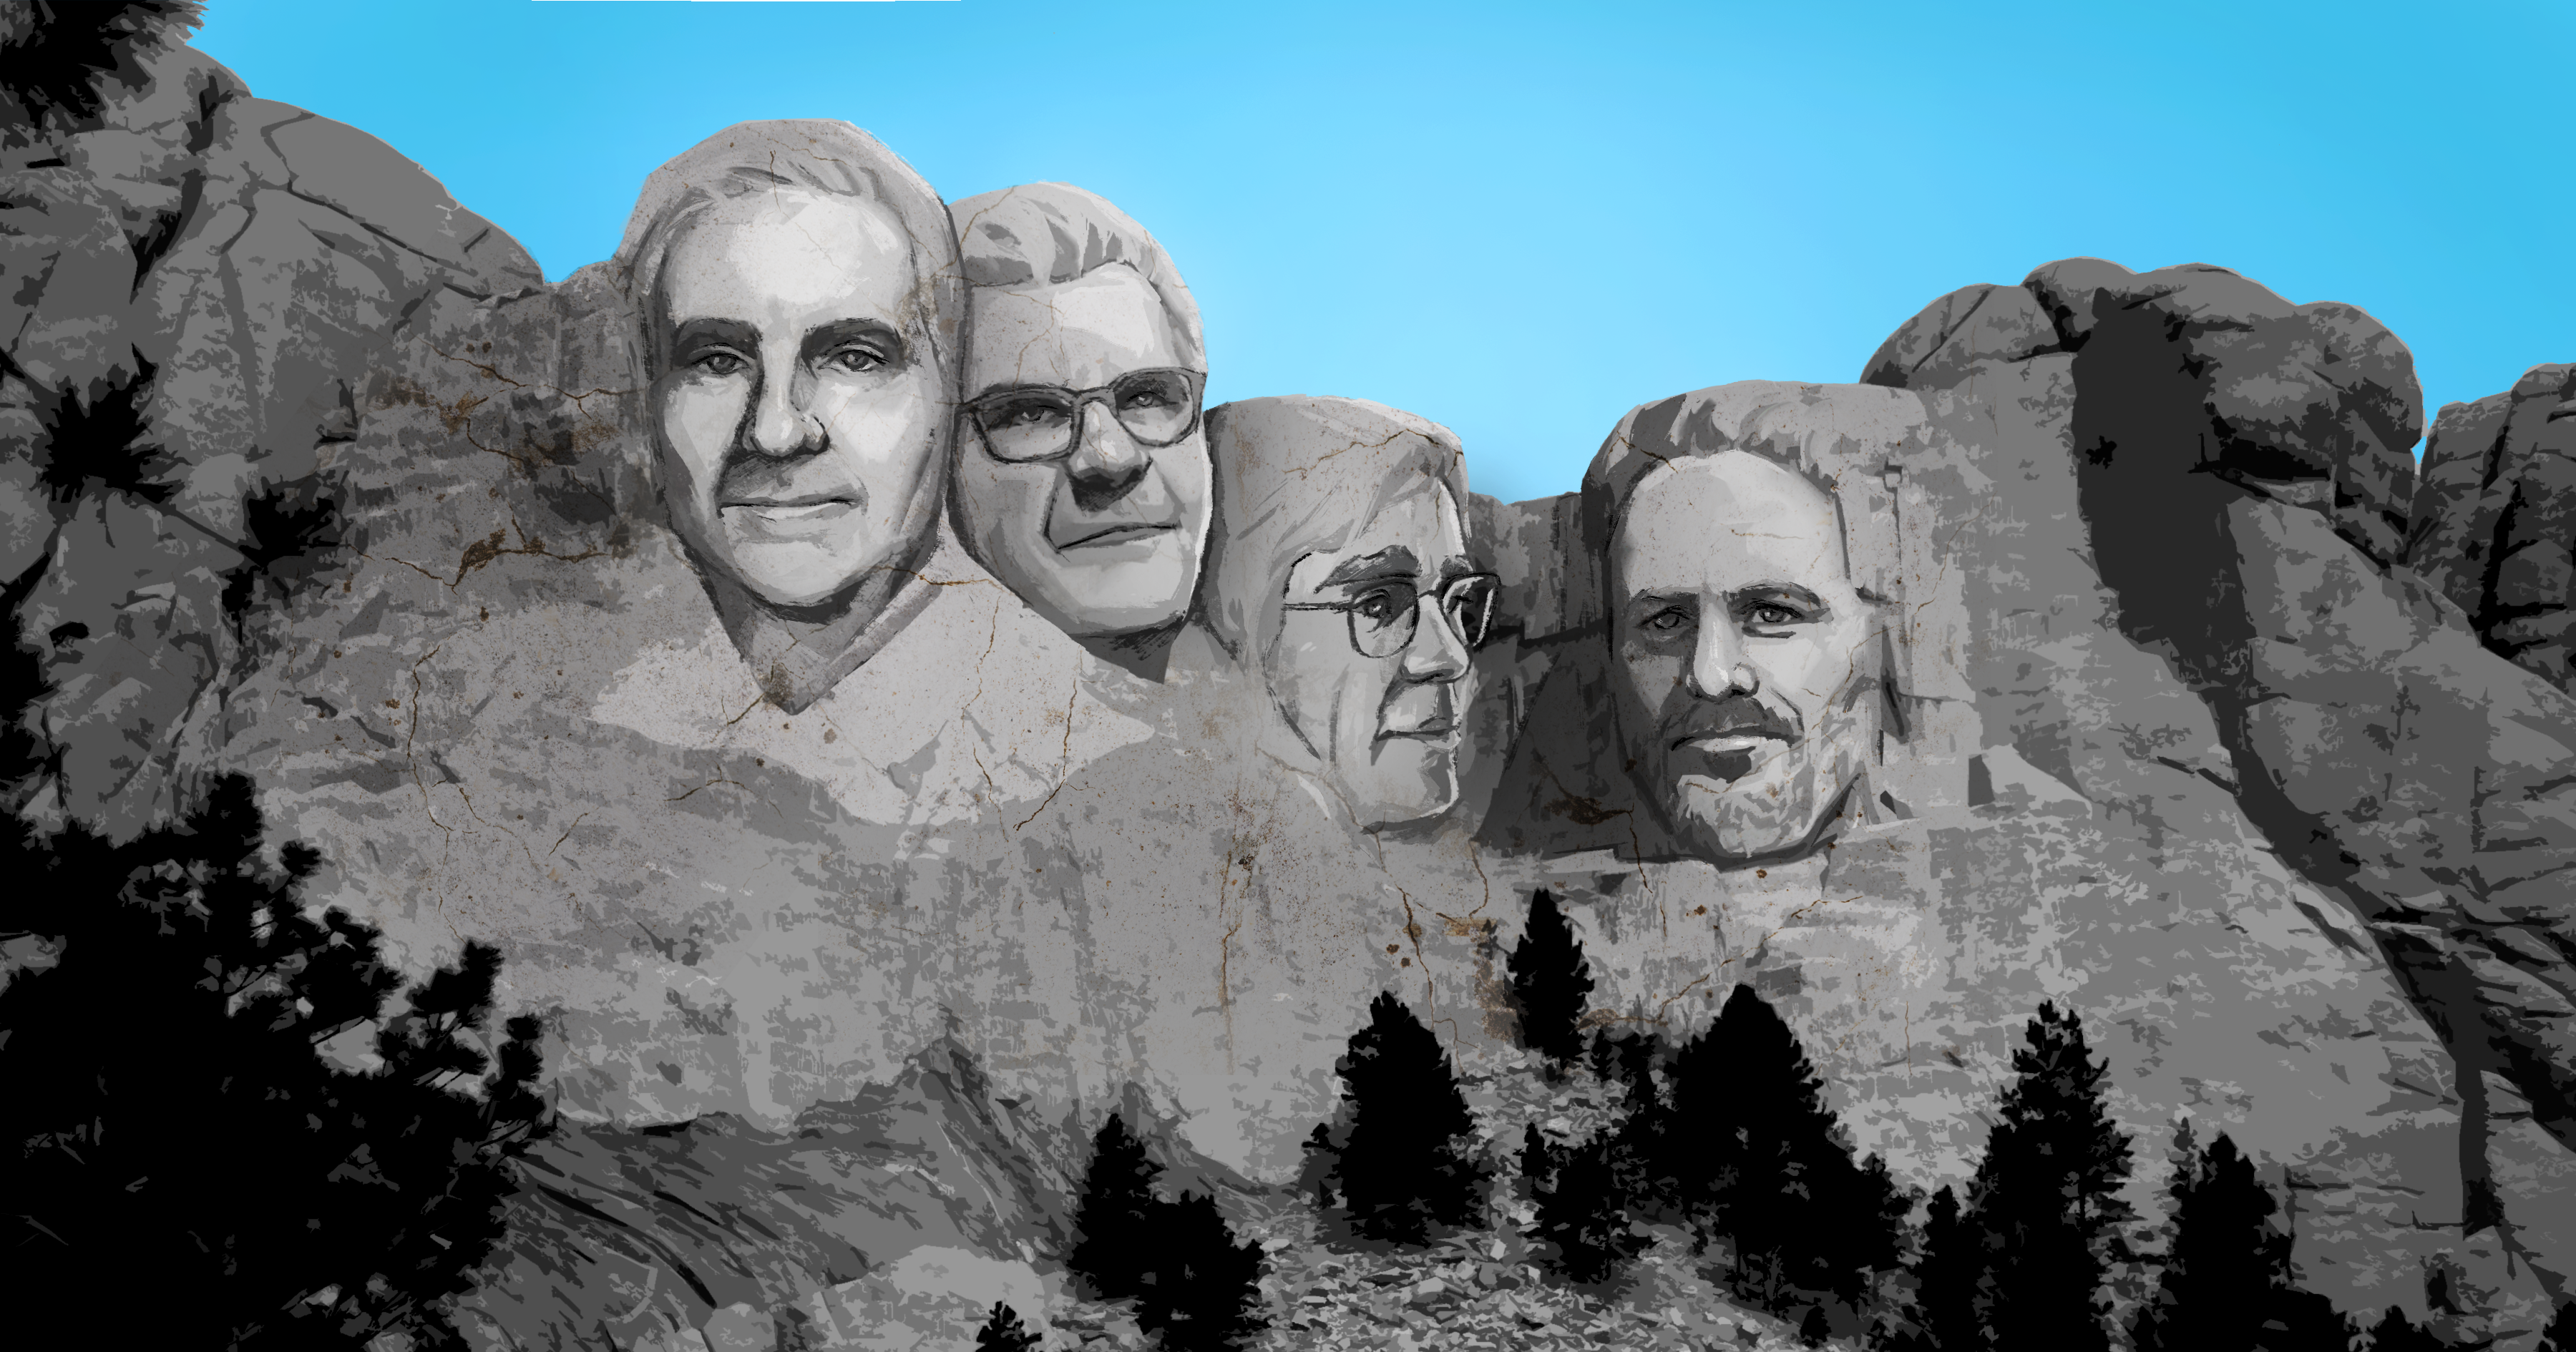 Founding fathers of open innovation